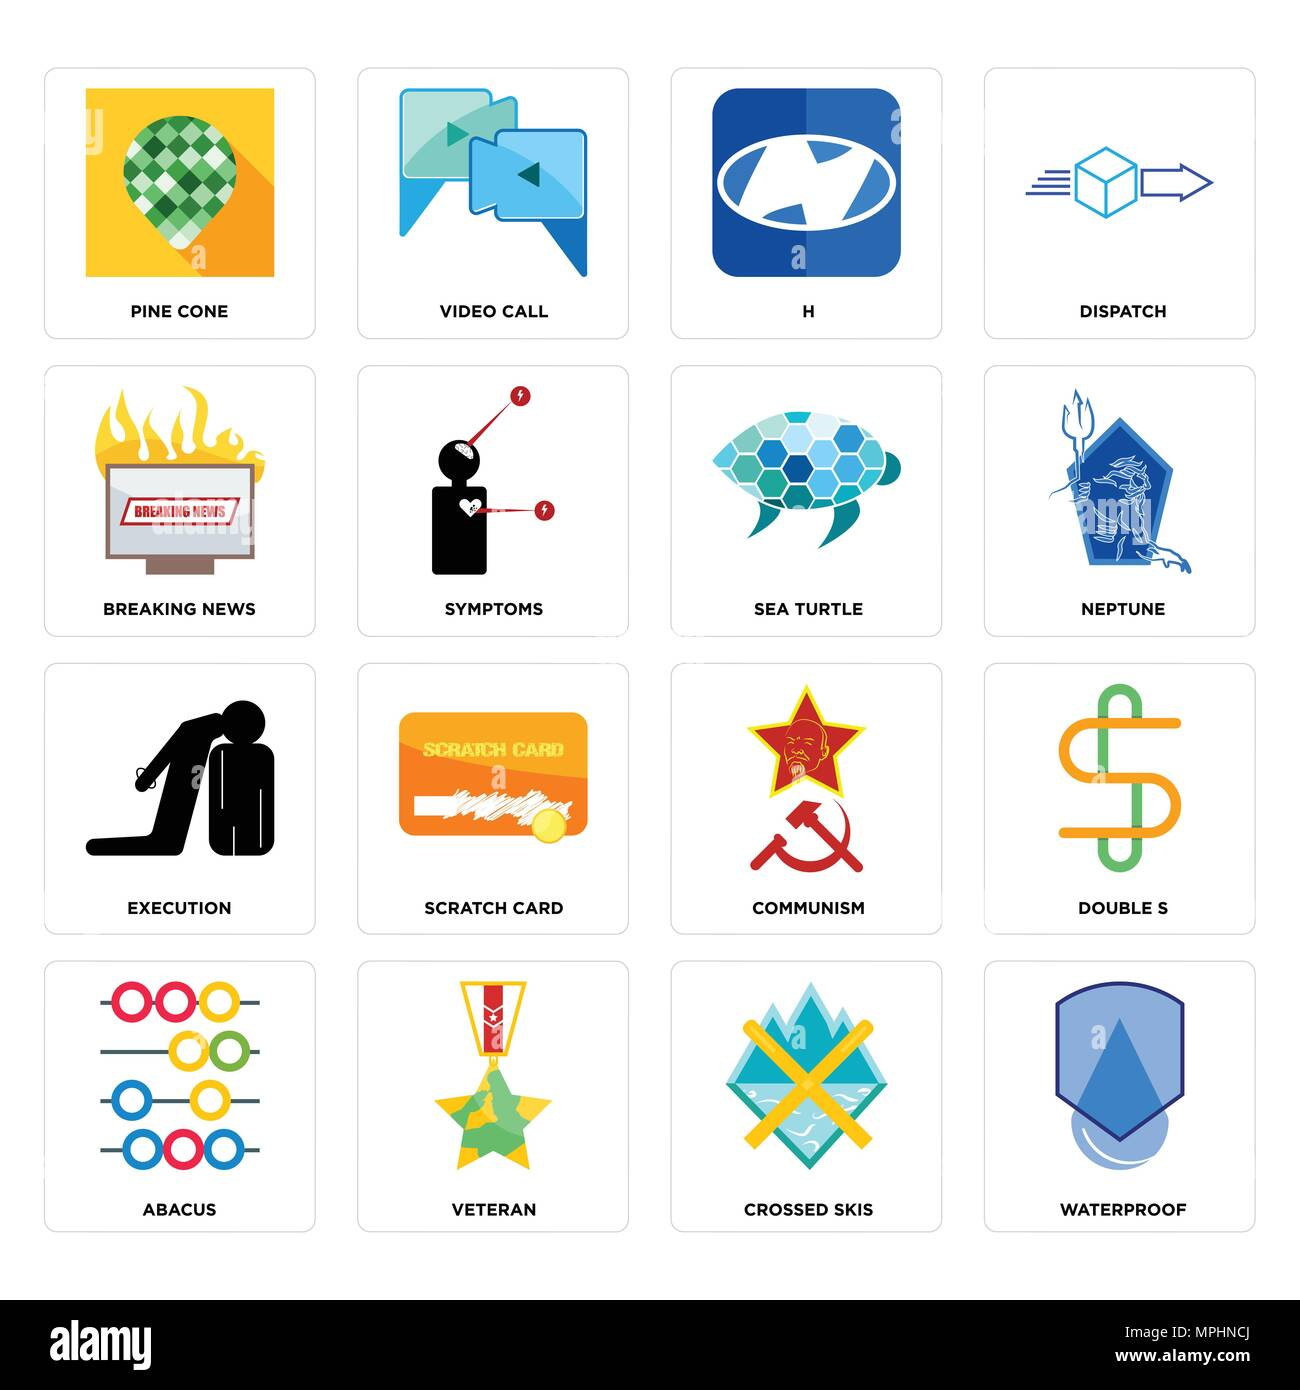 Revolution Symbols Stock Photos Revolution Symbols Stock Images